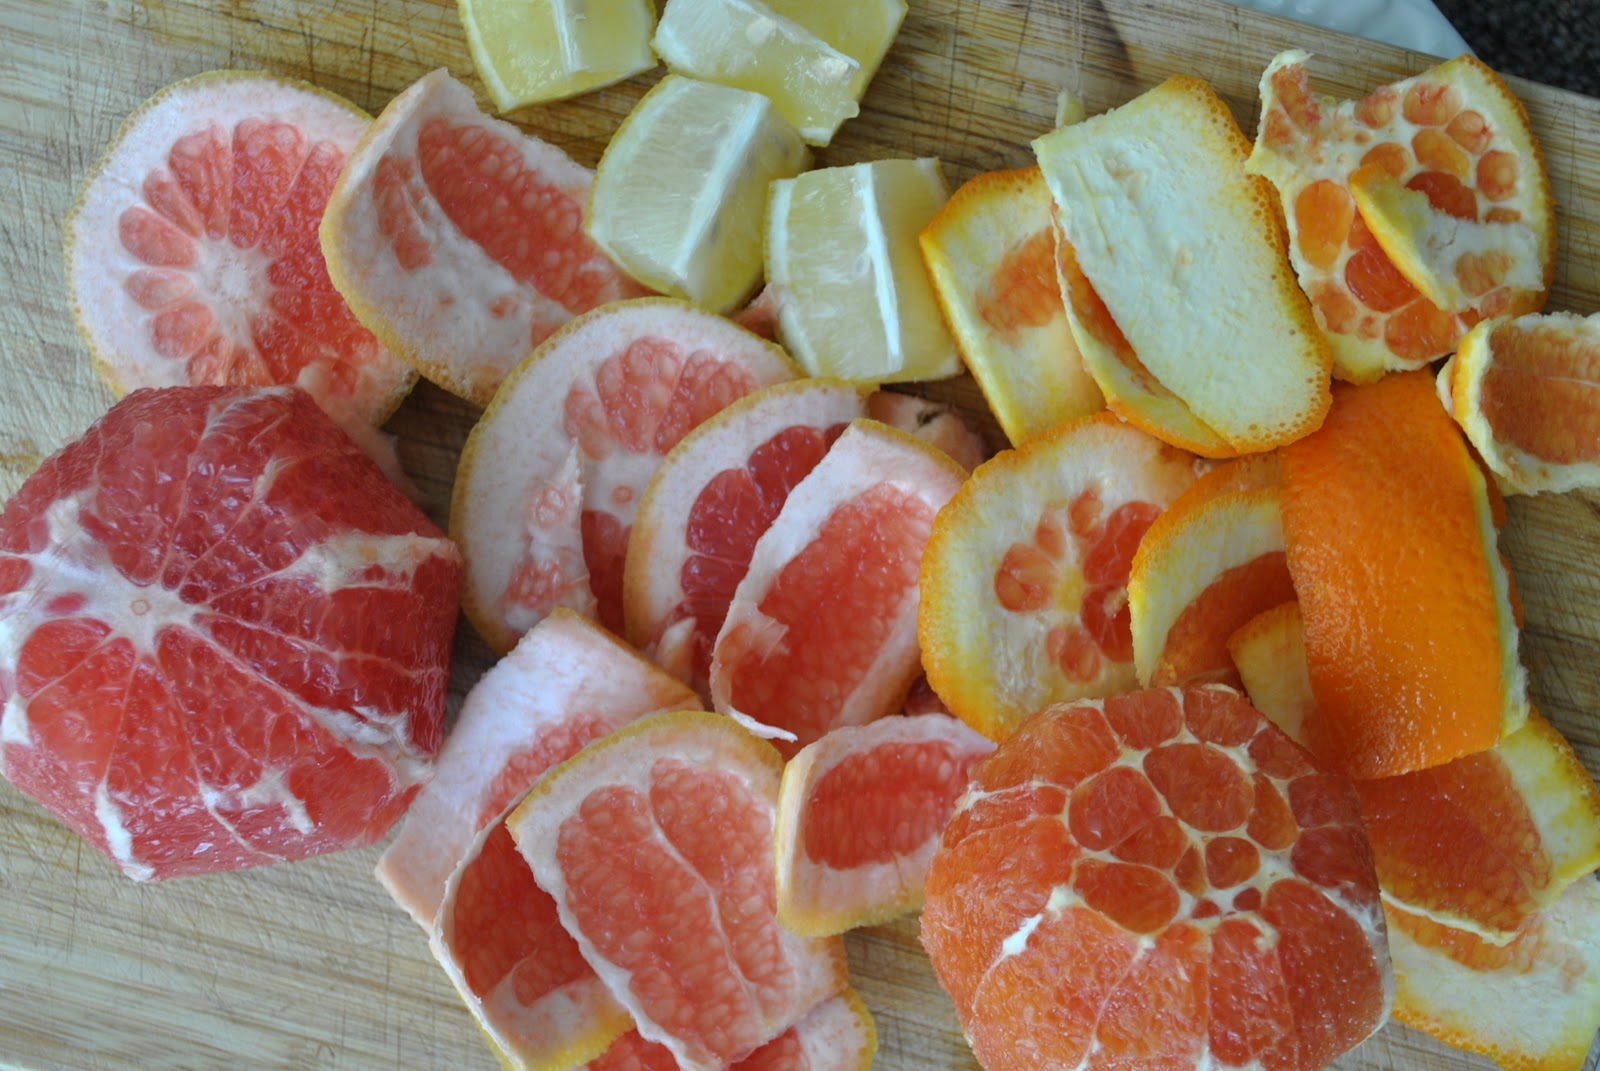 Fennel Citrus Salad with Shaved Pecorino Cheese